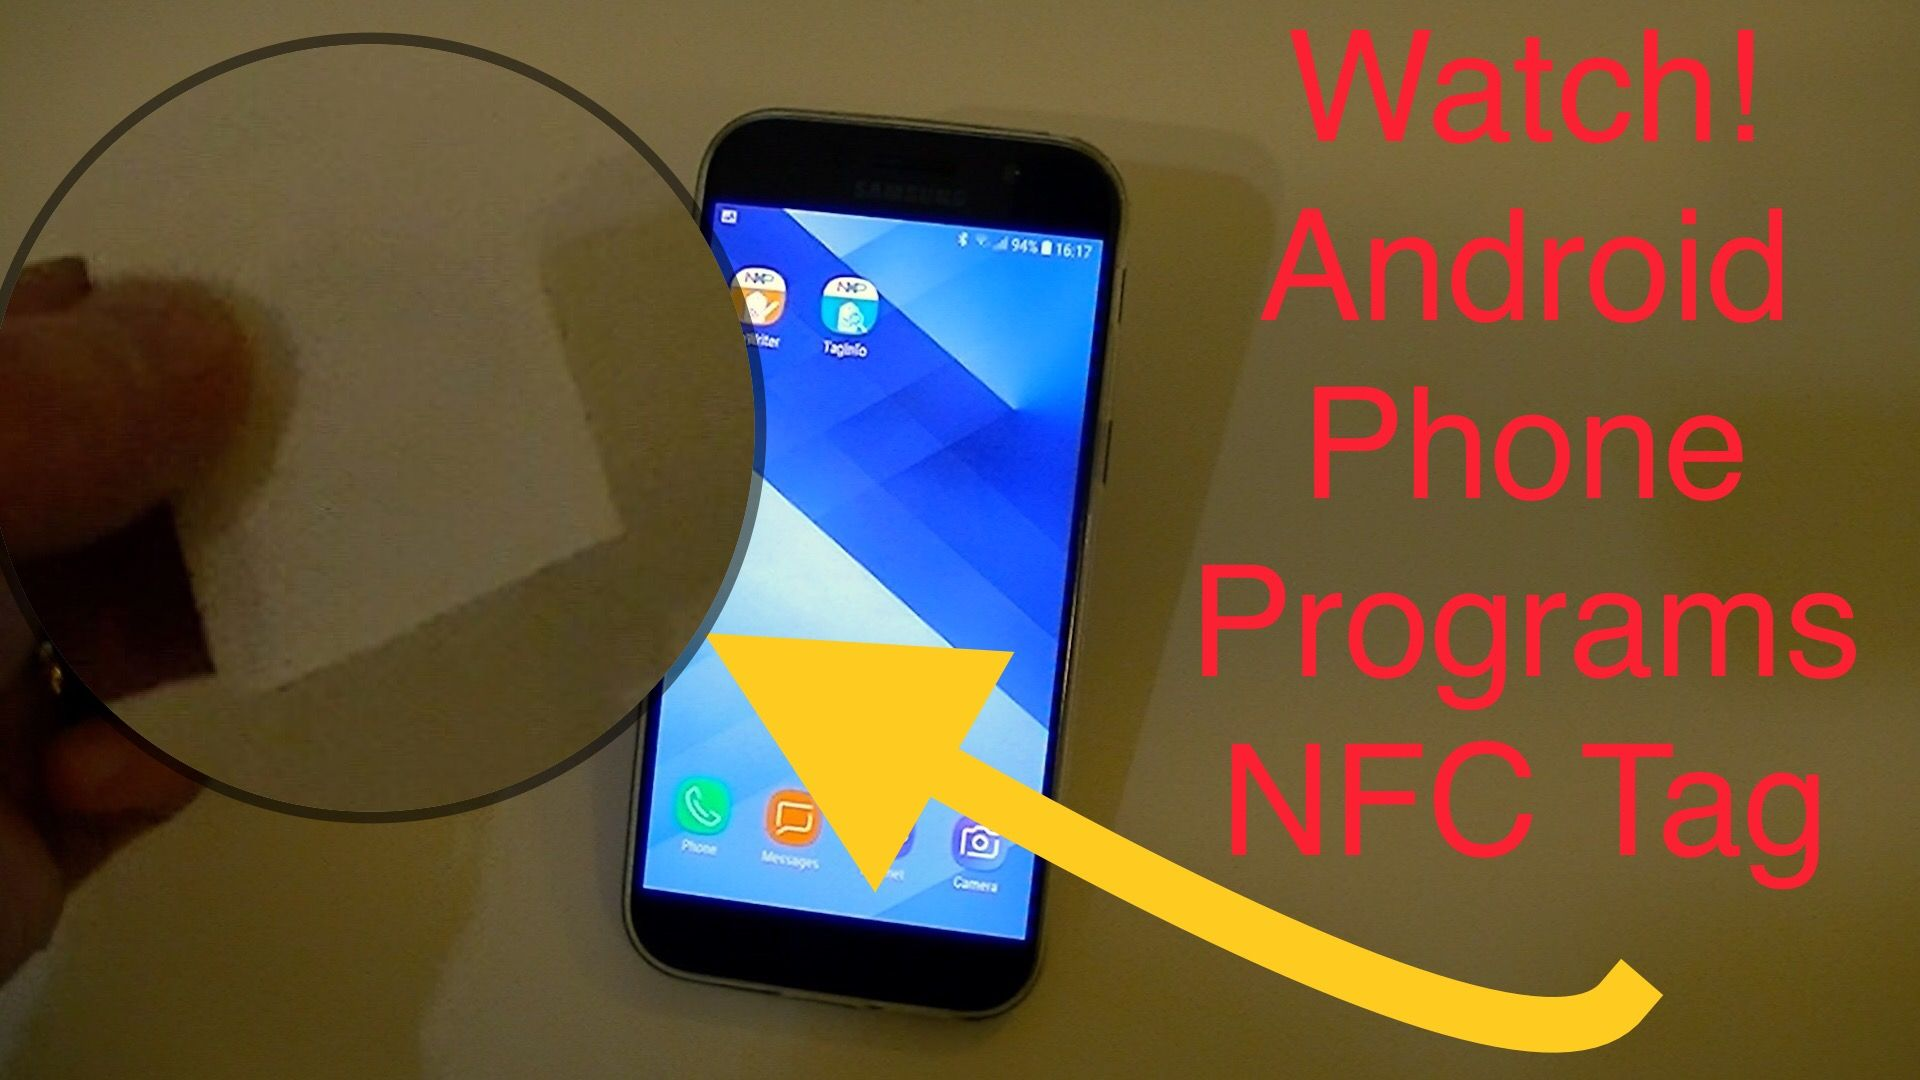 Samsung Android Phone Programs a RFID NFC Tag Android